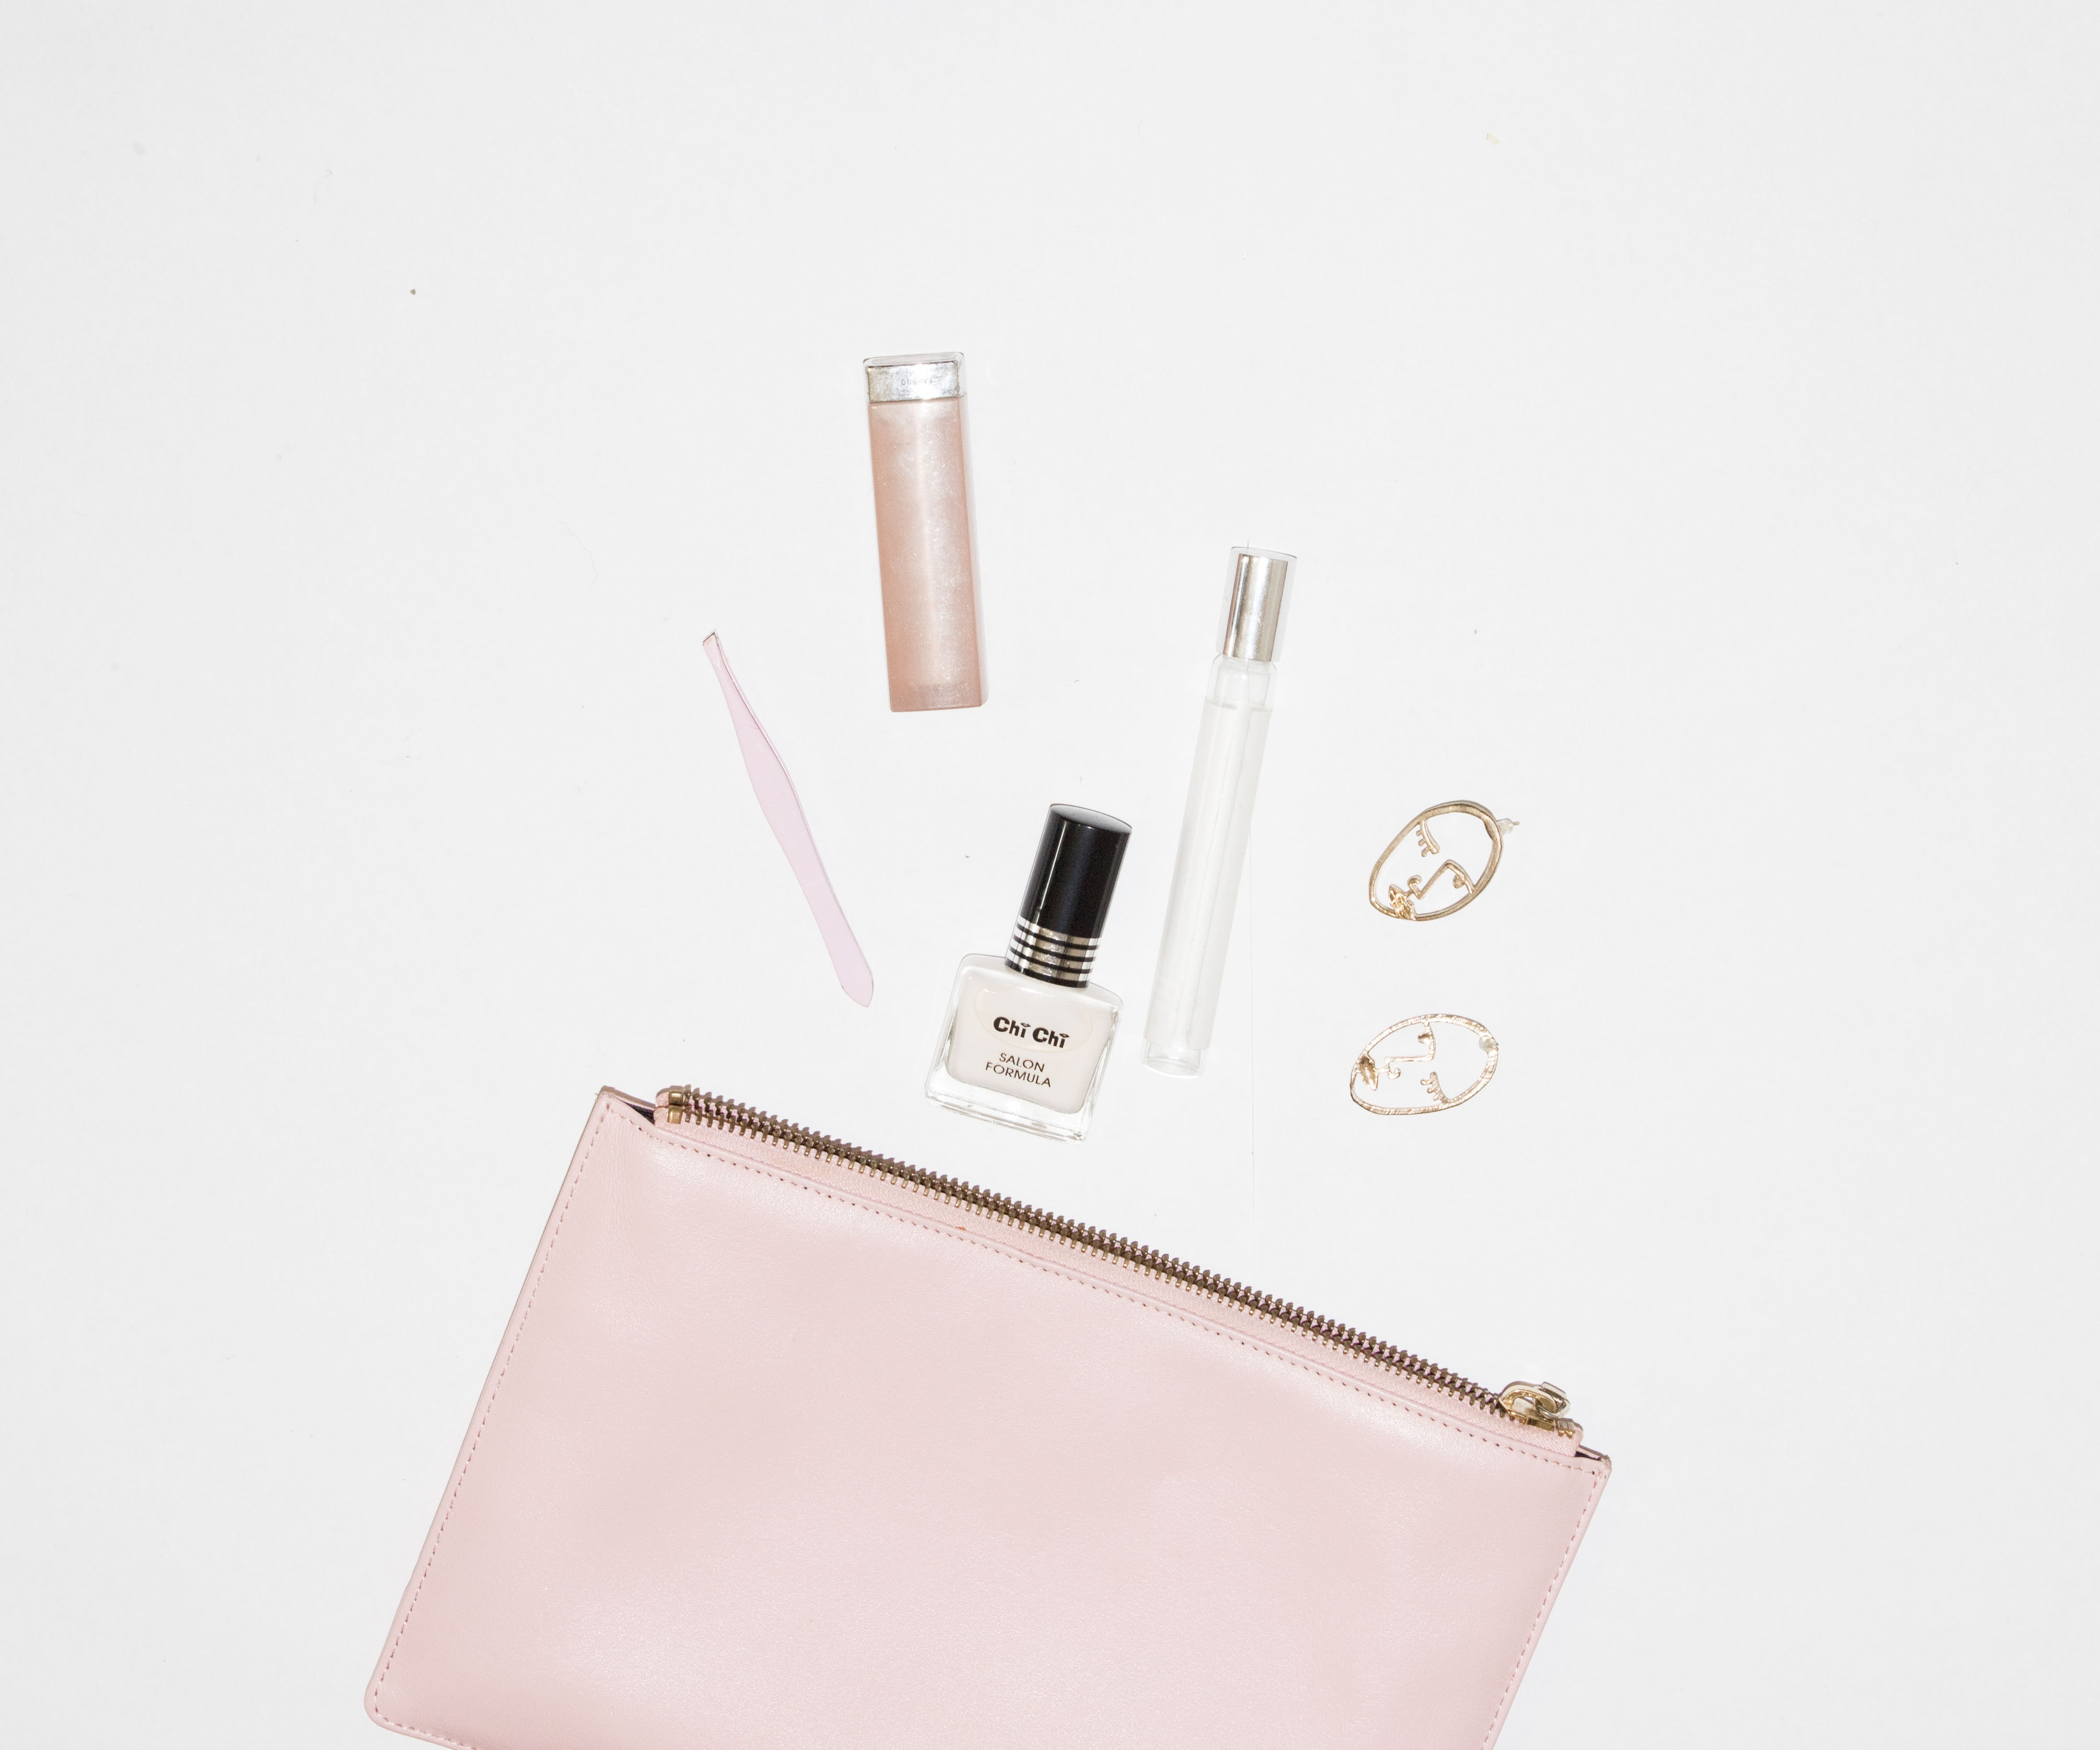 white nail polish bottle and pink leather zip pouch